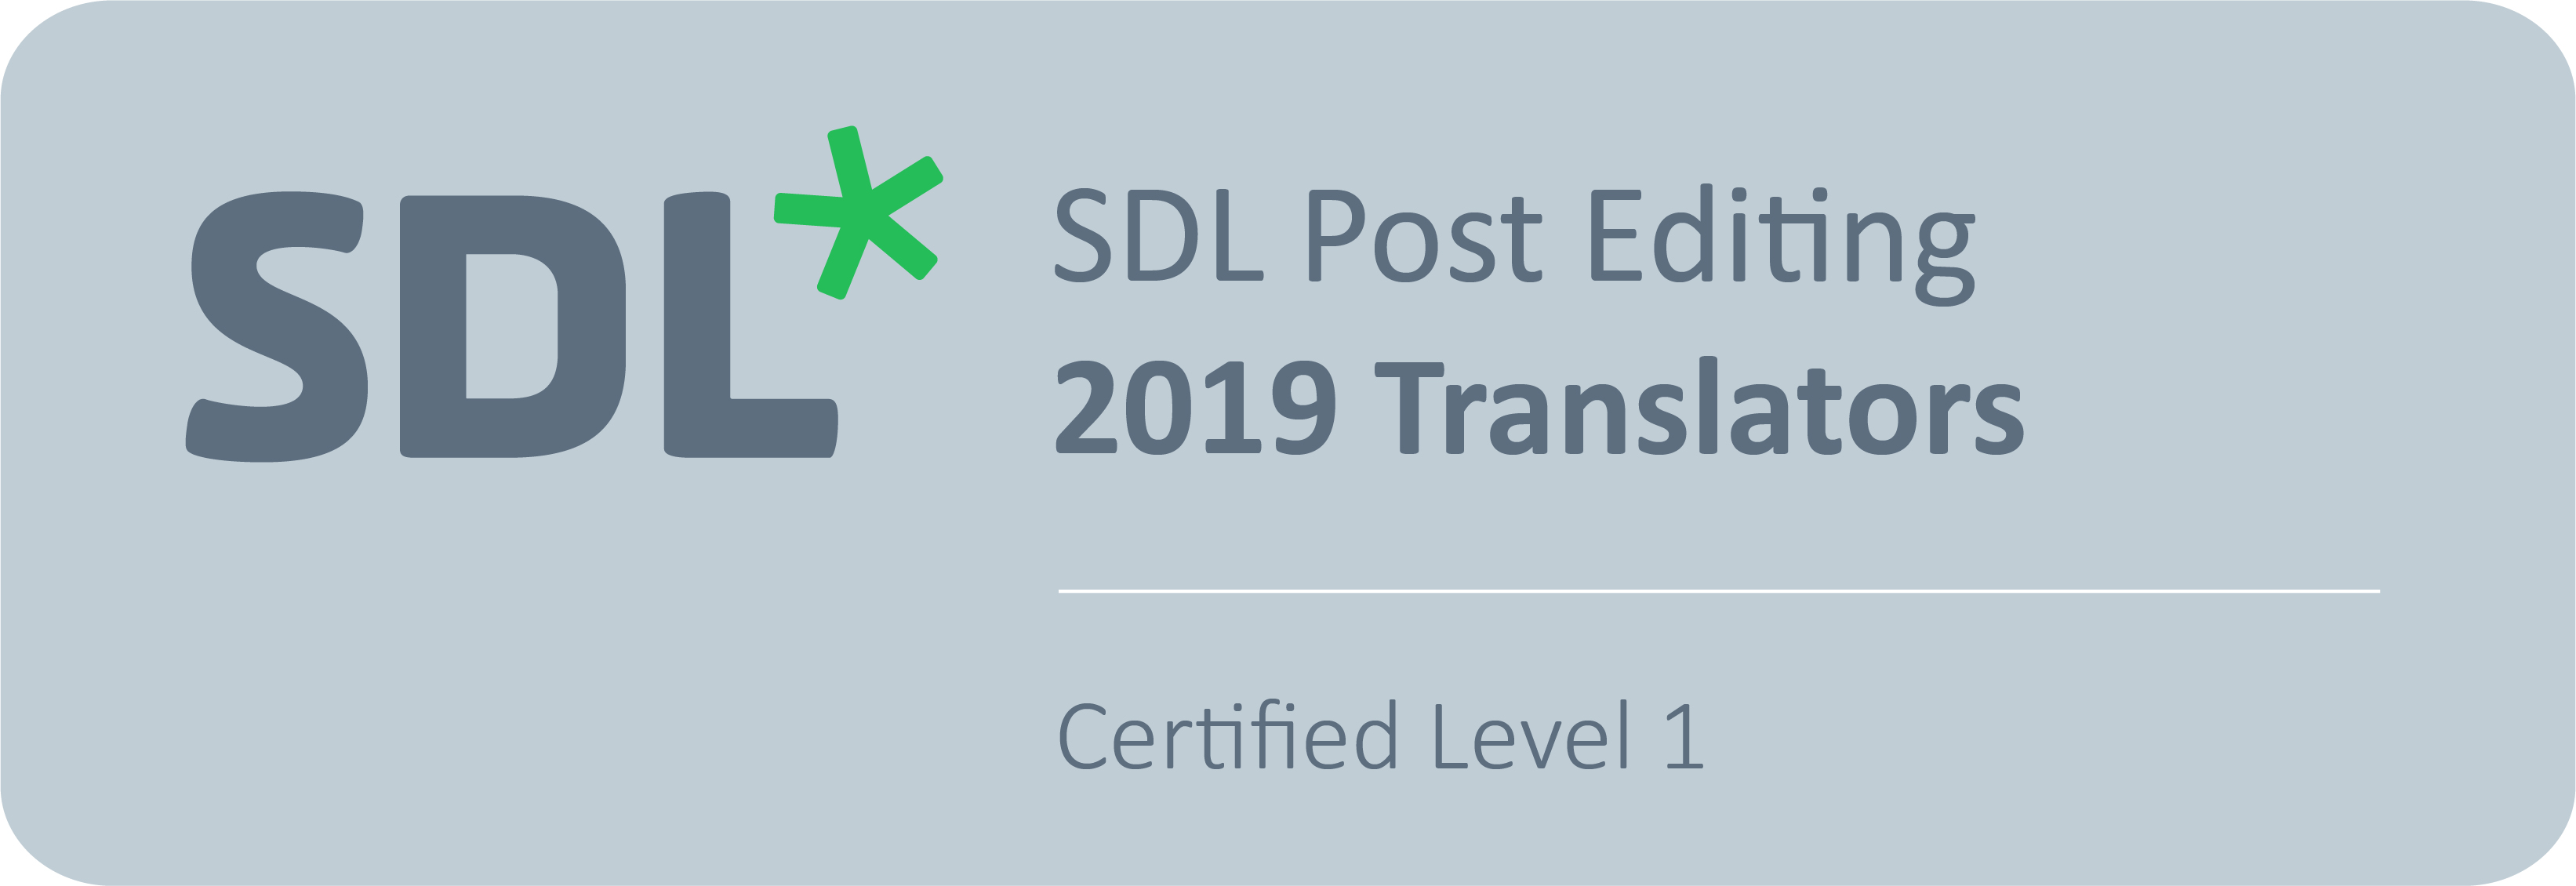 SDL_badges_Postediting_Cert_788X271.jpg